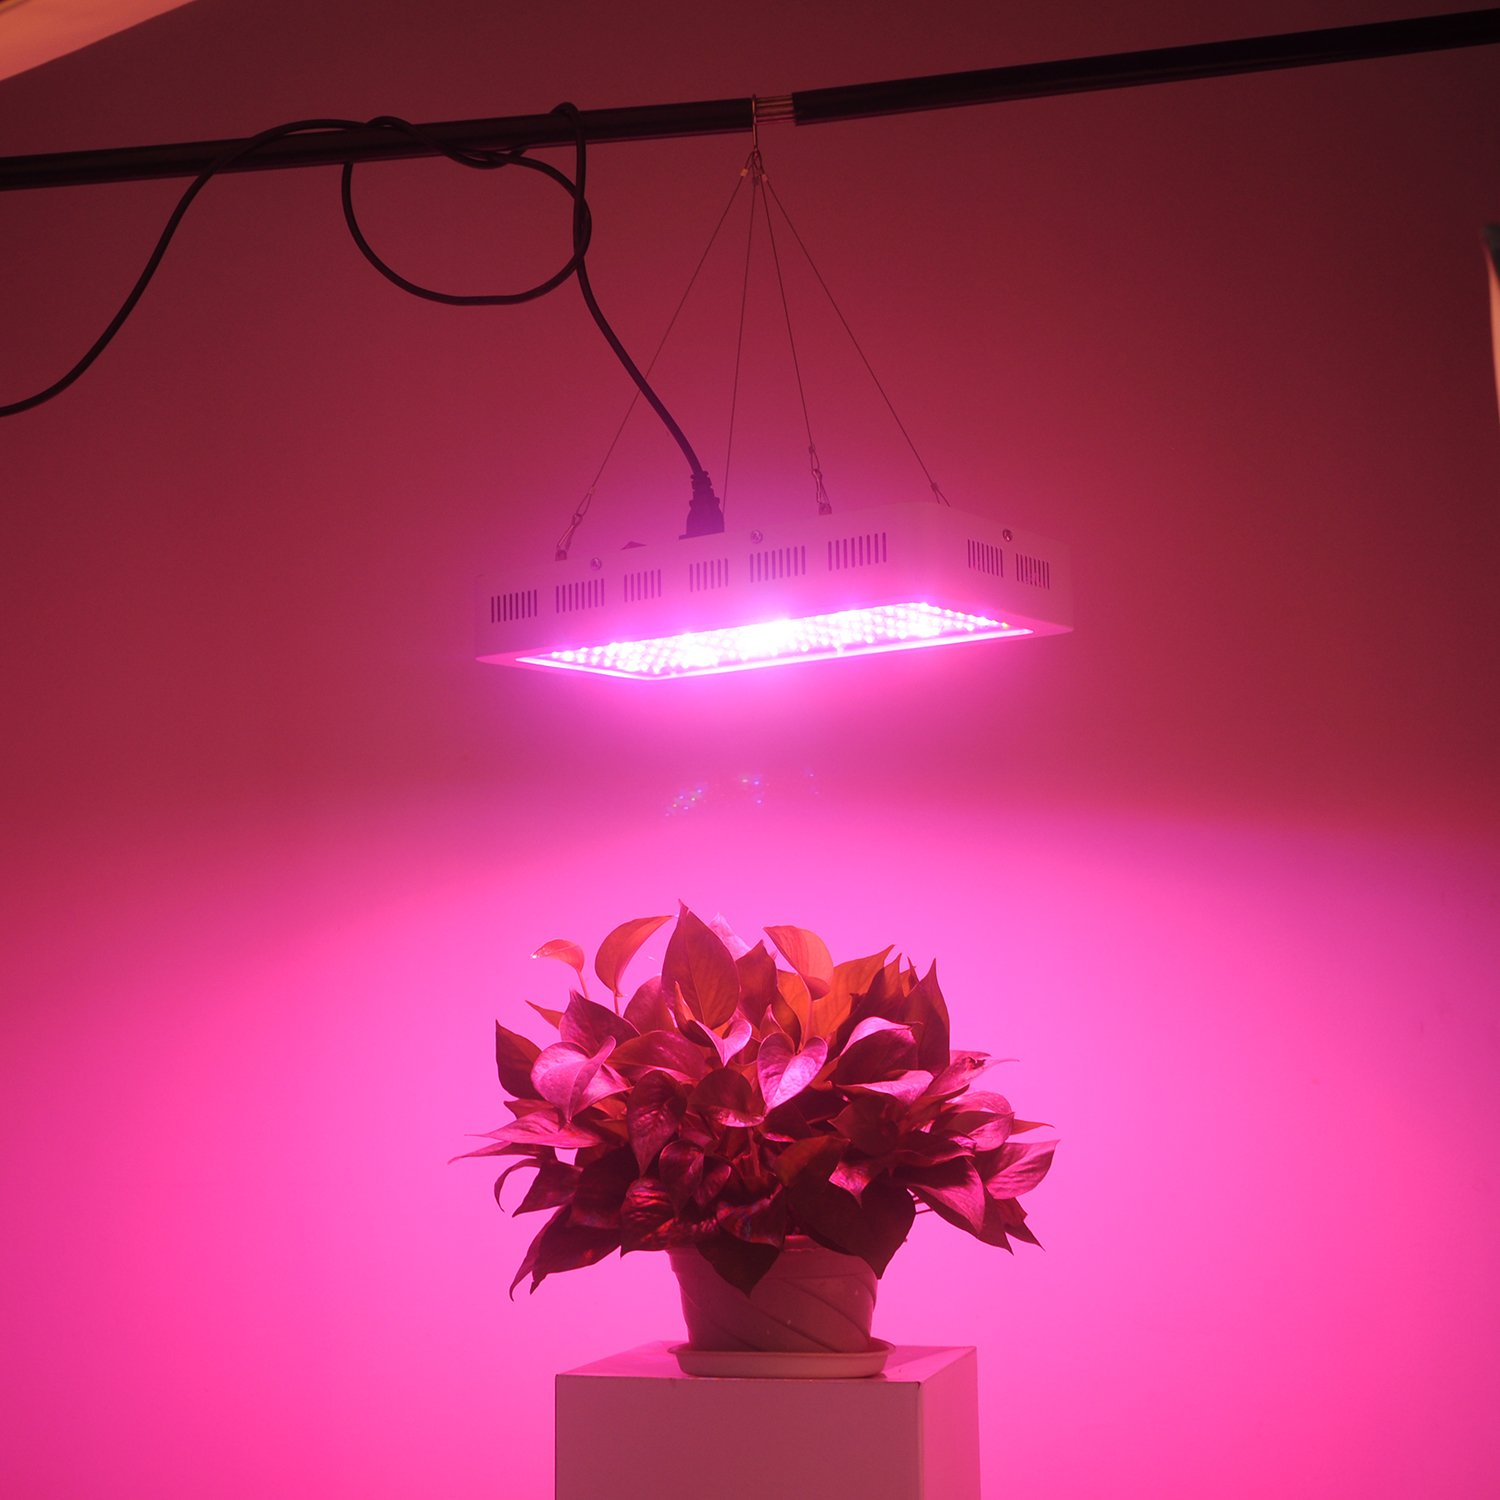 RECORDCENT LED Grow Light full review